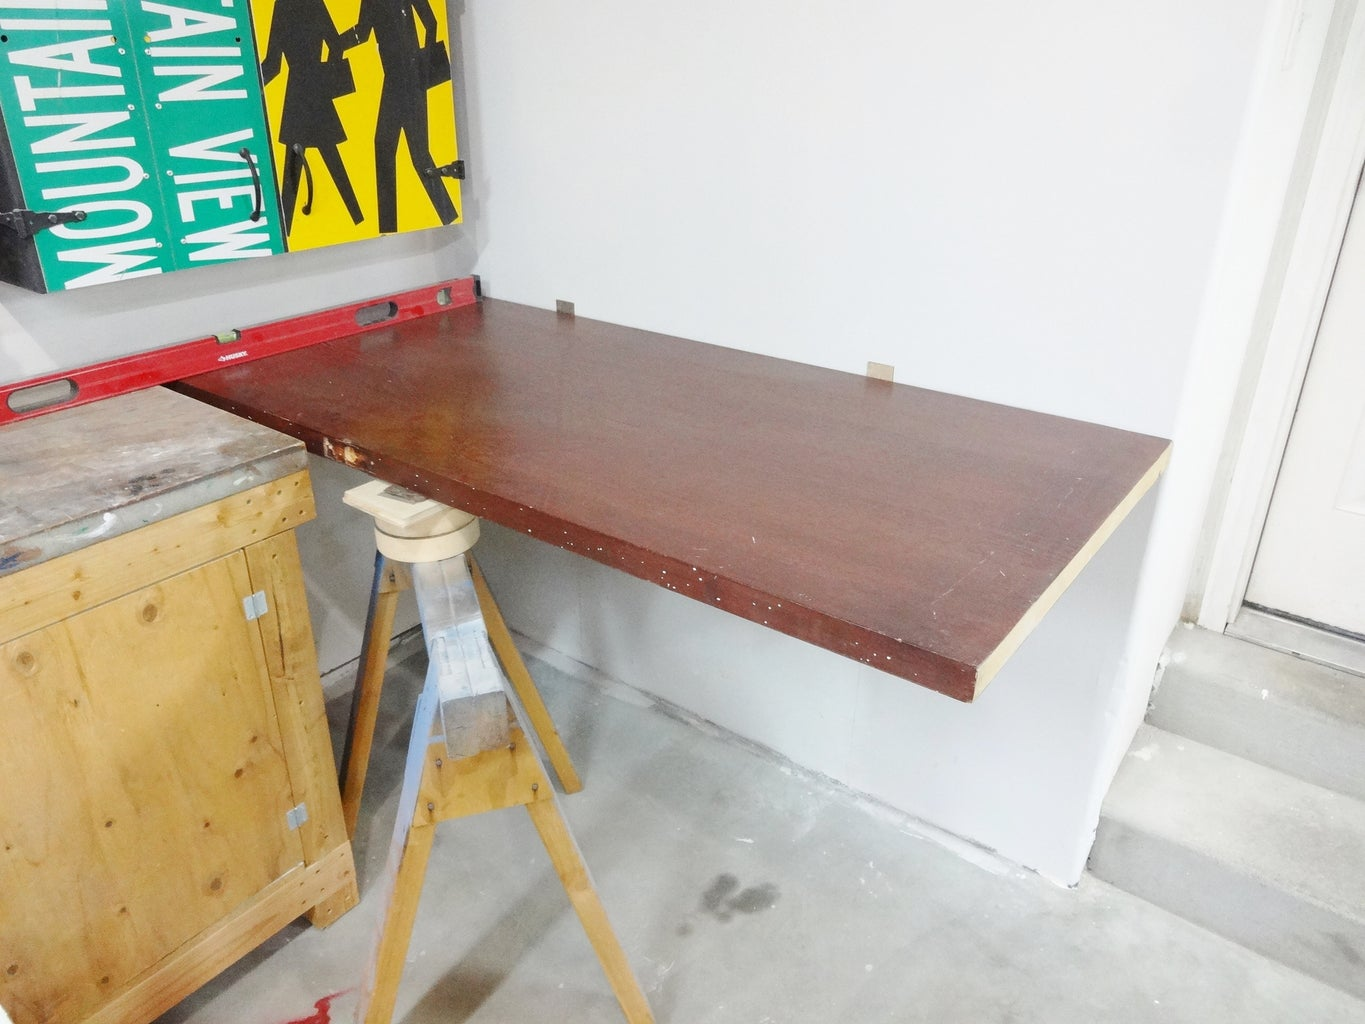 Position the Table Top